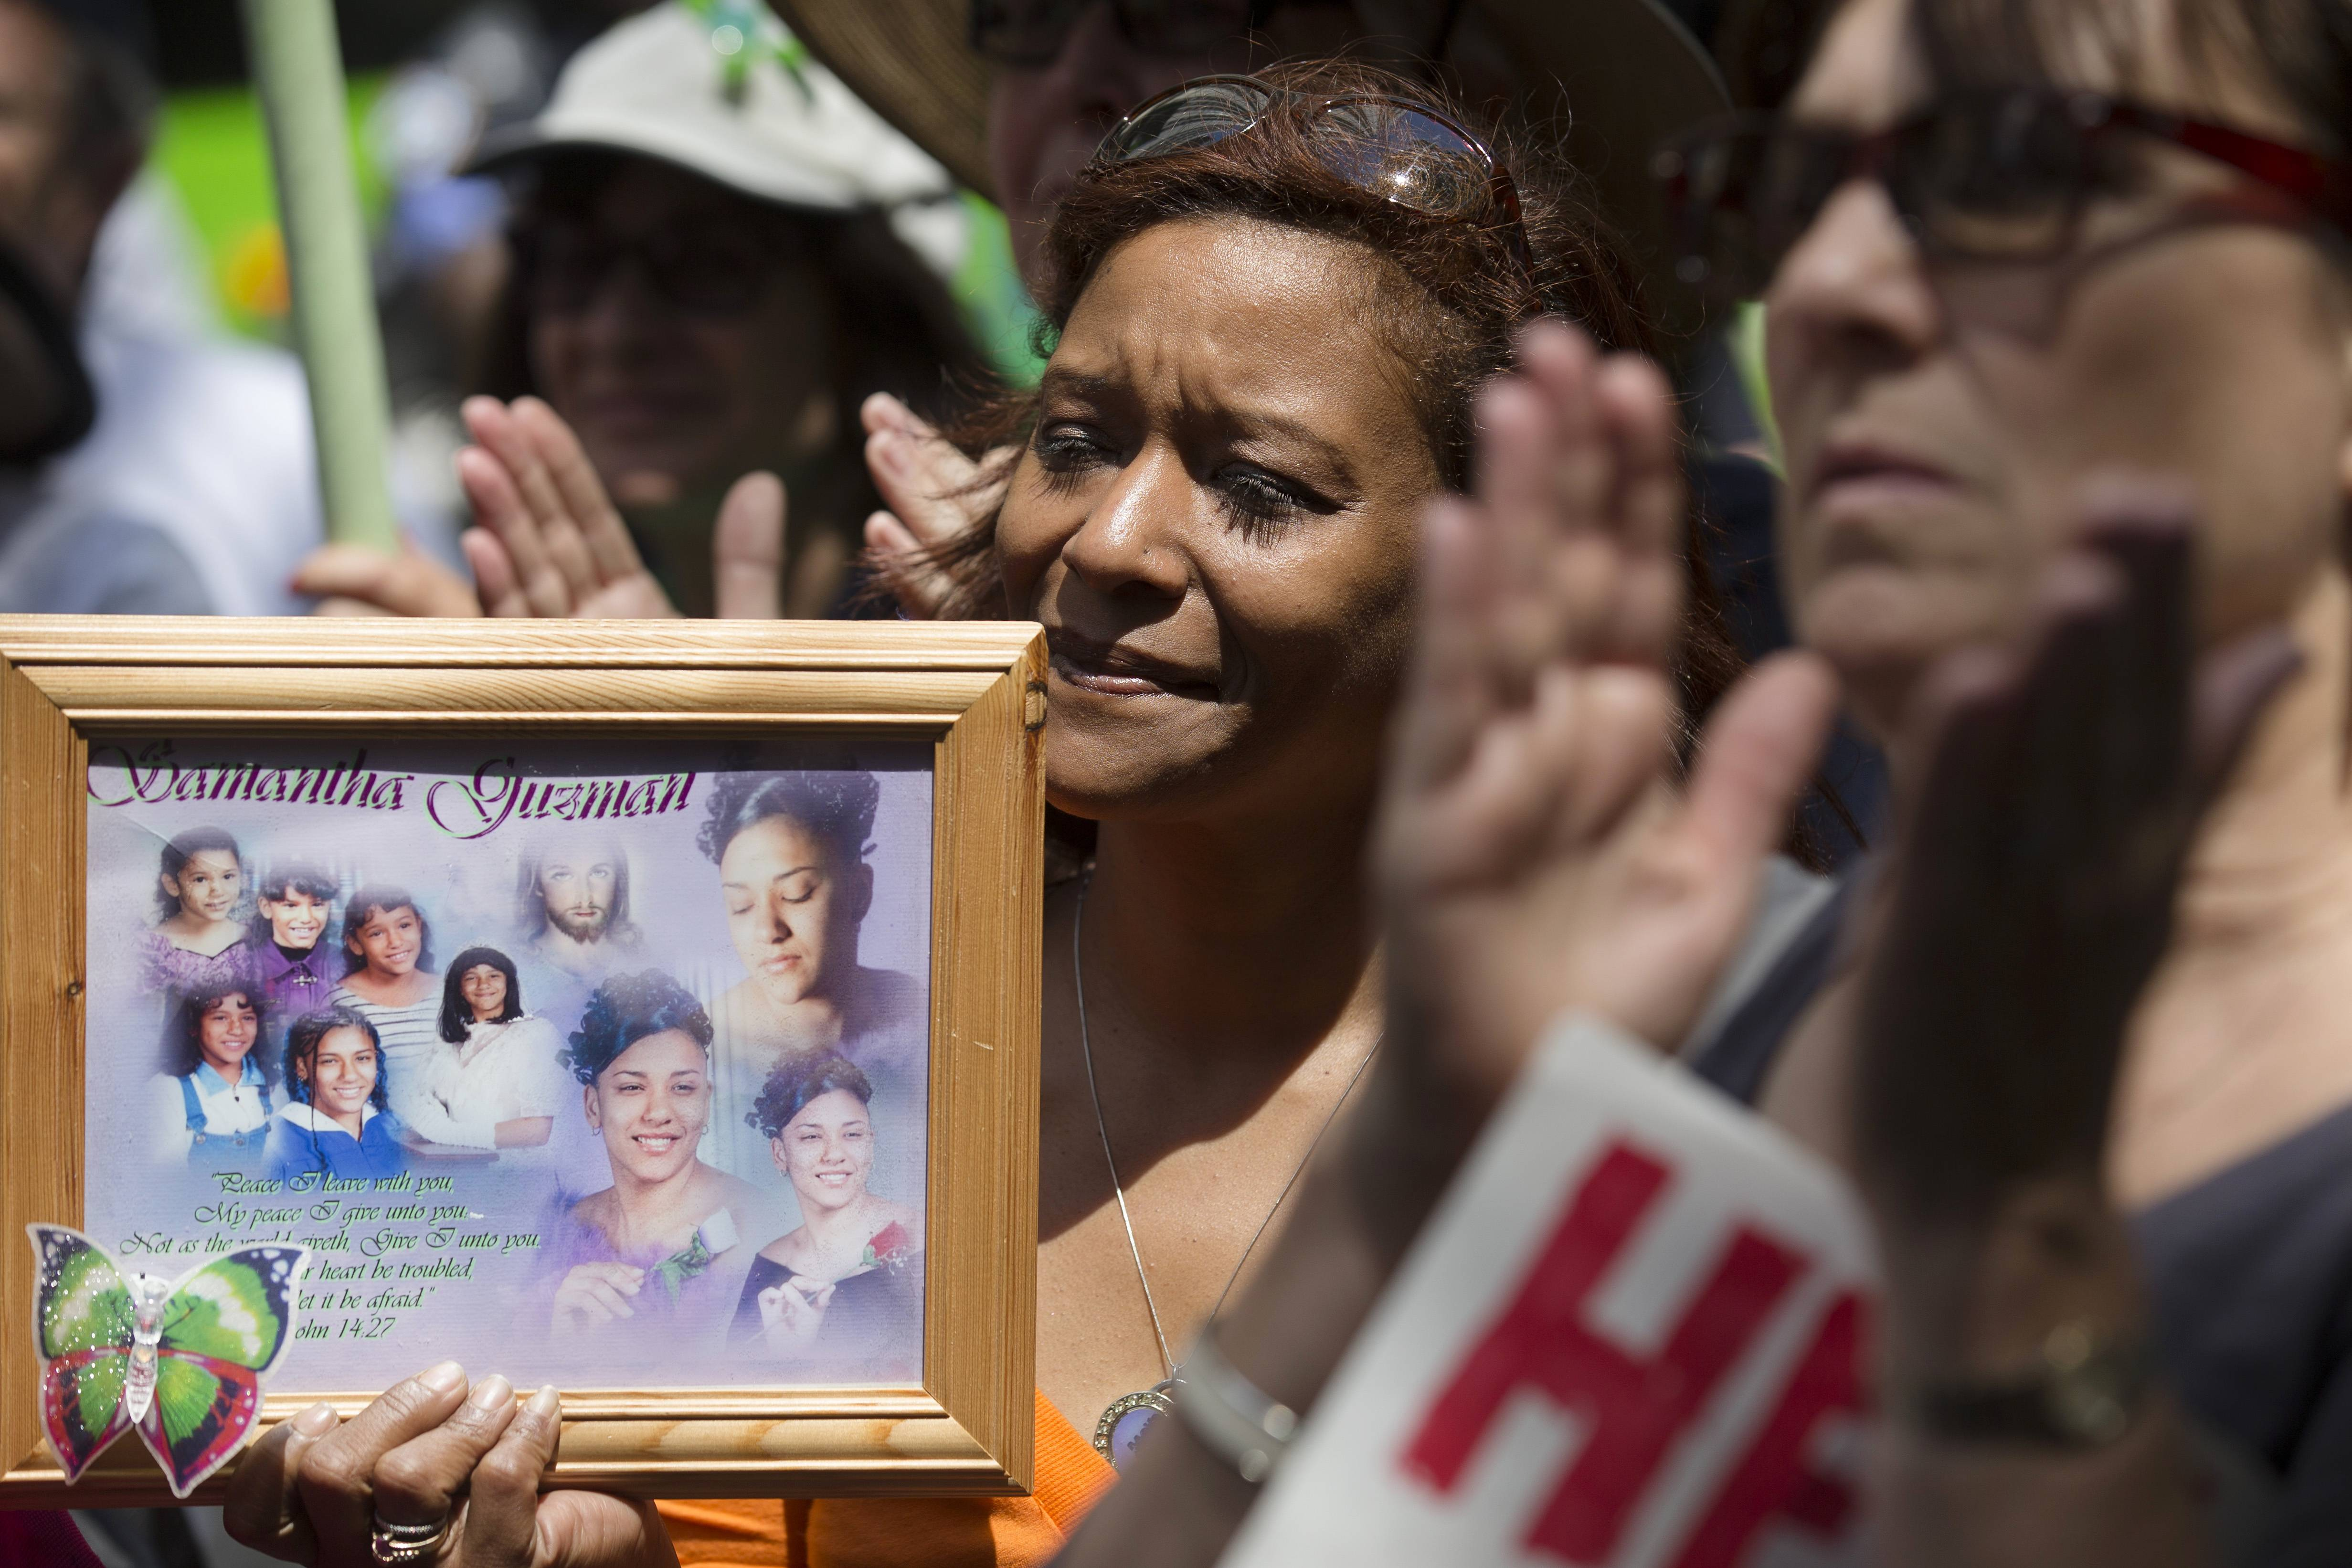 Diana Rodriguez, of Staten Island, holds a framed image of her daughter Samantha Guzman who was a victim of gun violence, at a rally outside city hall to call for tougher gun control laws, Saturday, June 14, in New York. The protest was underwritten by former New York Mayor Michael Bloomberg, one of the most visible gun control advocates in the U.S., and included relatives of some of those slain in the 2012 shooting rampage at Sandy Hook Elementary School in Newtown, Conn.